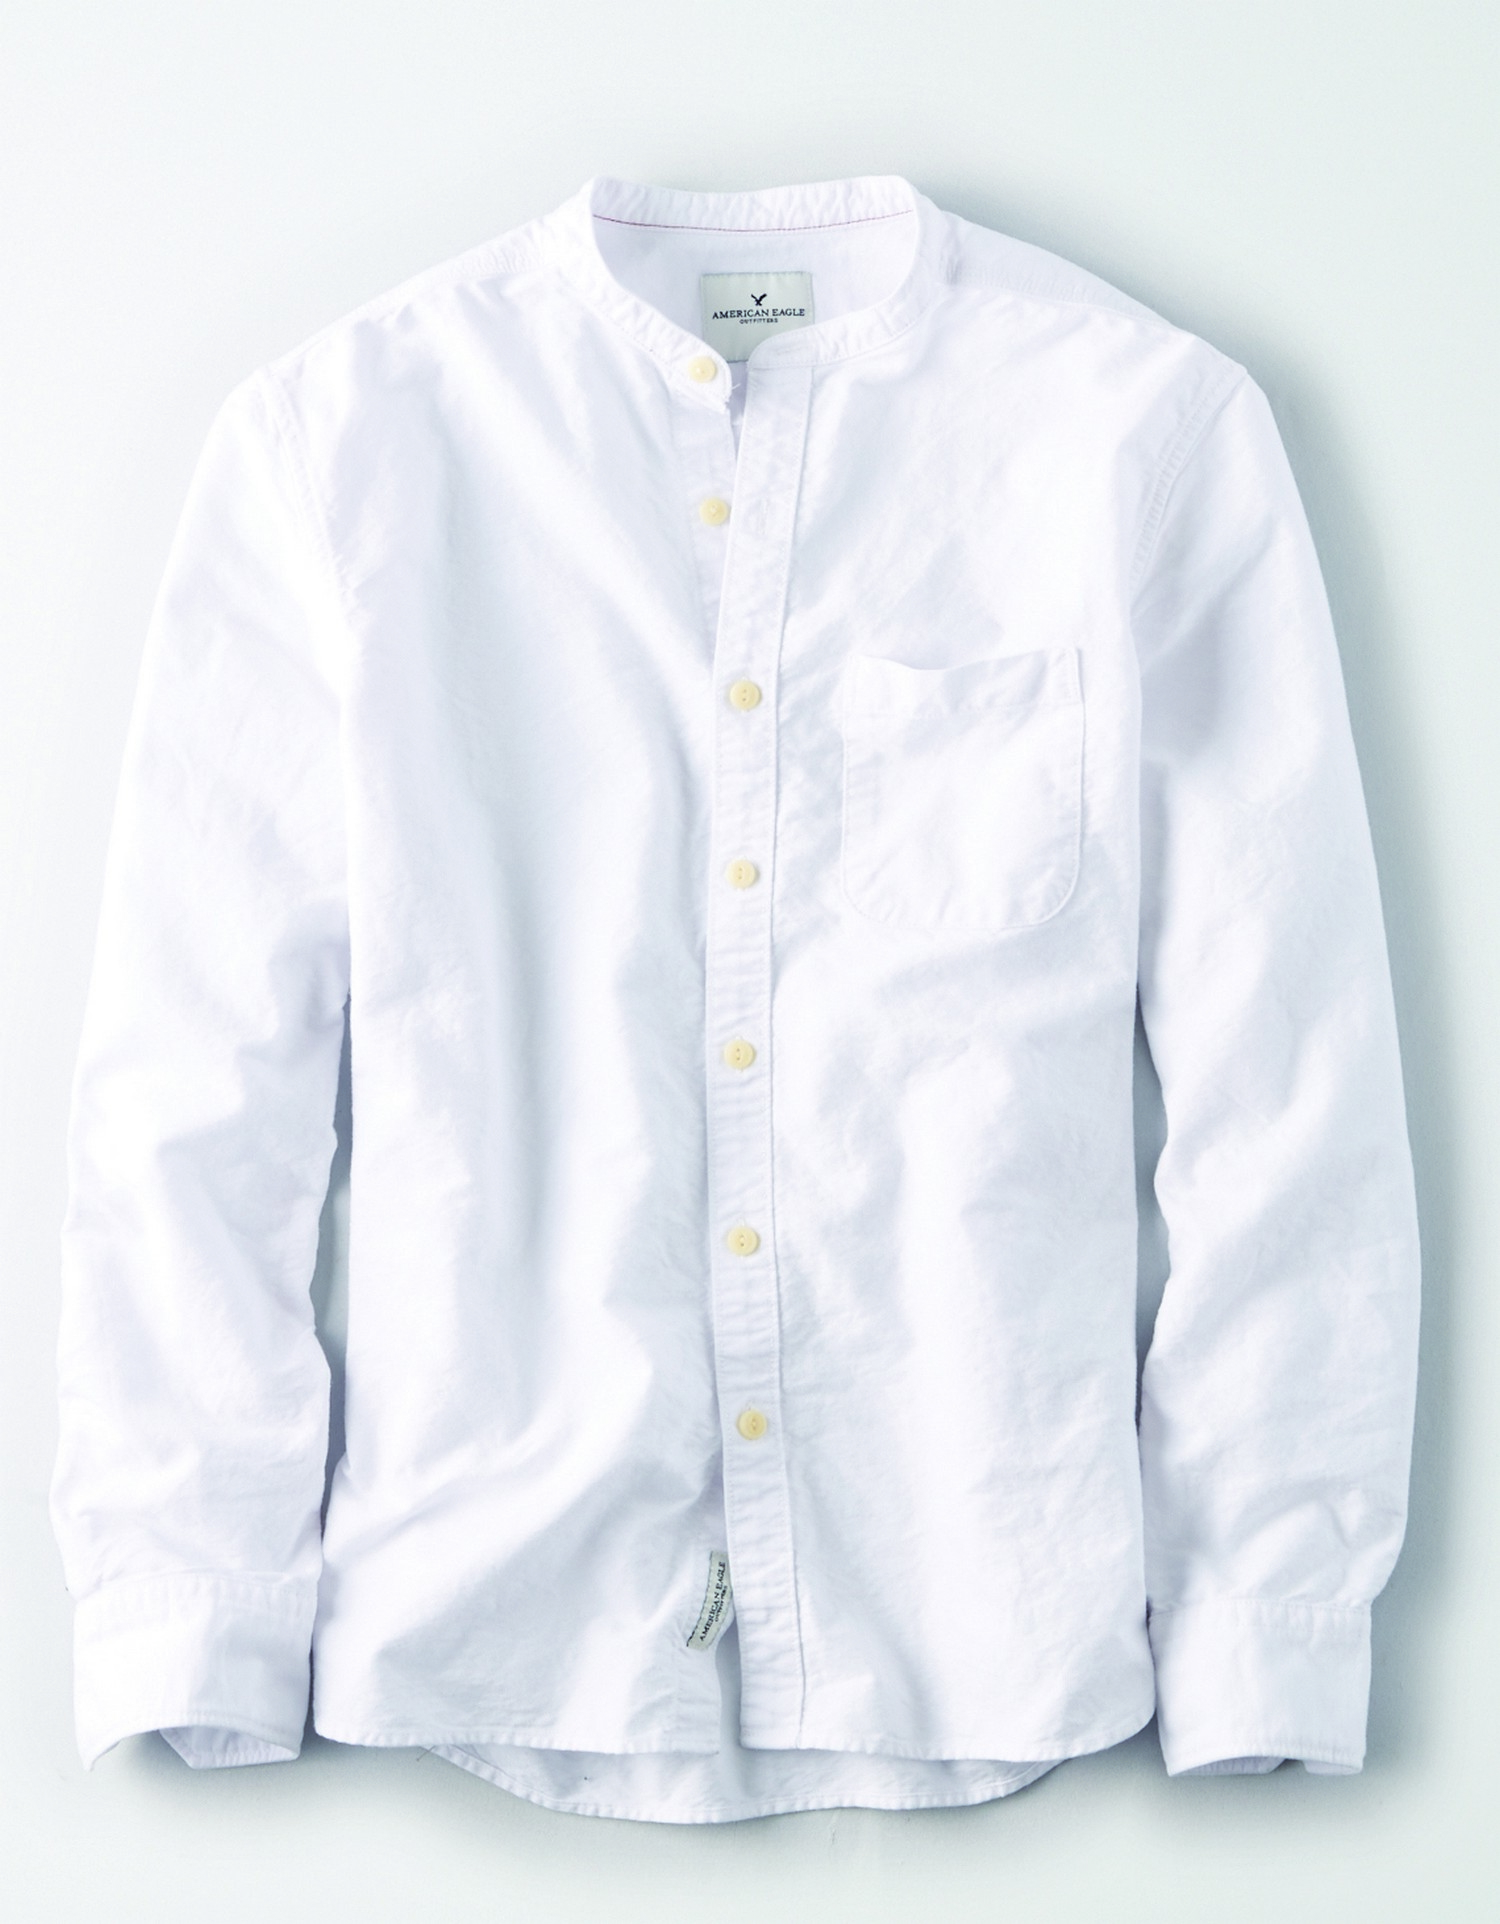 AE  - M - Apparel - 1120 CF OXFORD BANDED COLLAR  - White - Left chest pocket - button down - cream buttons BG *Tracked